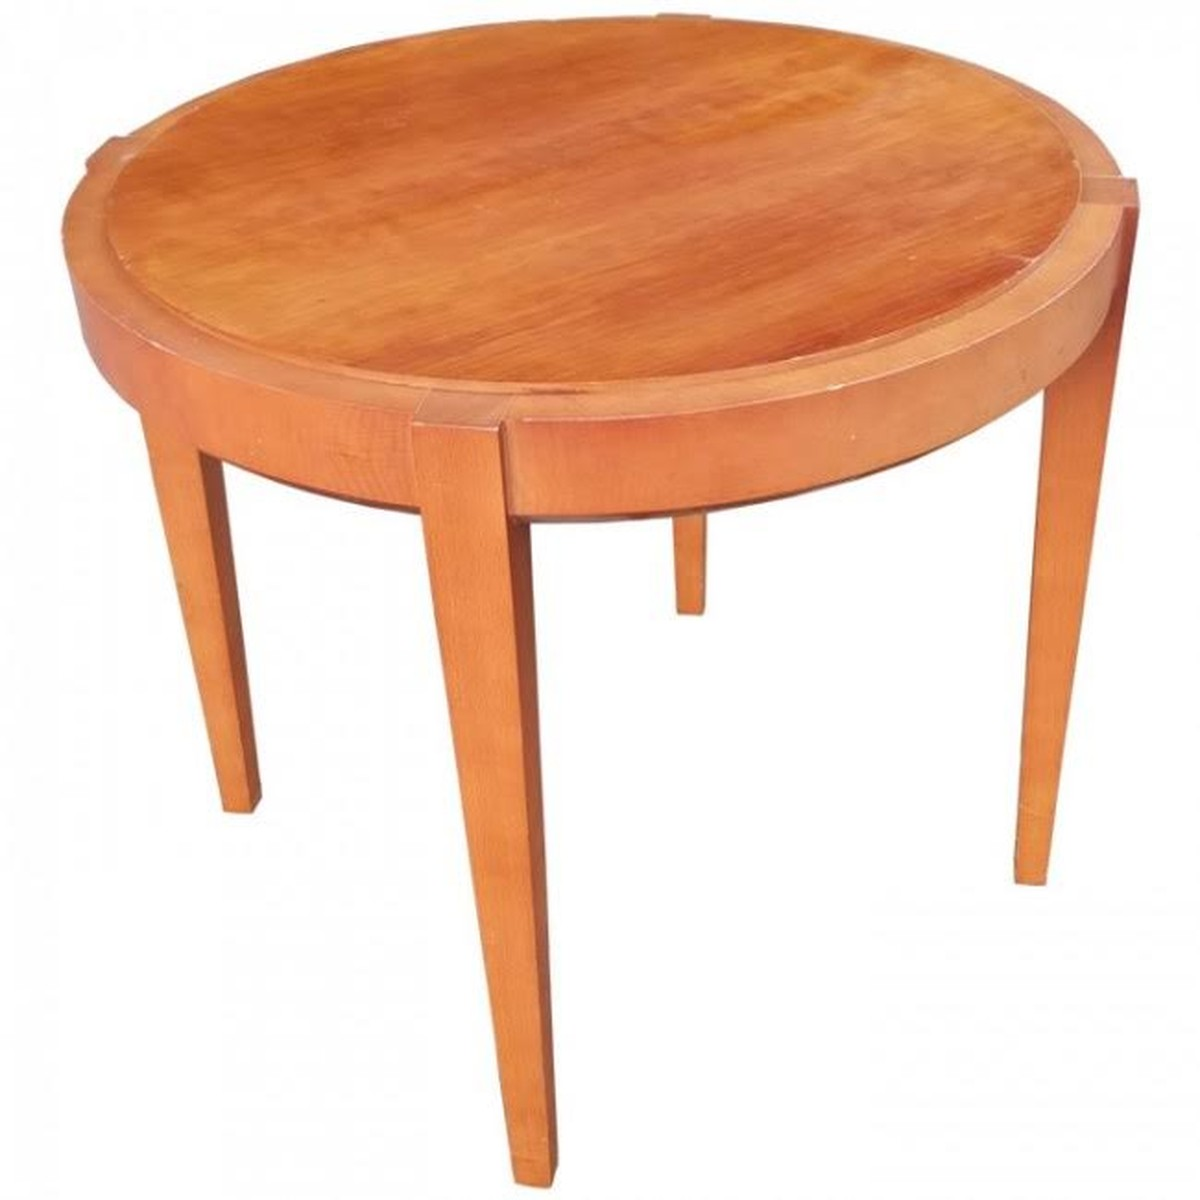 Round Coffee Table Uk Sale: Secondhand Chairs And Tables